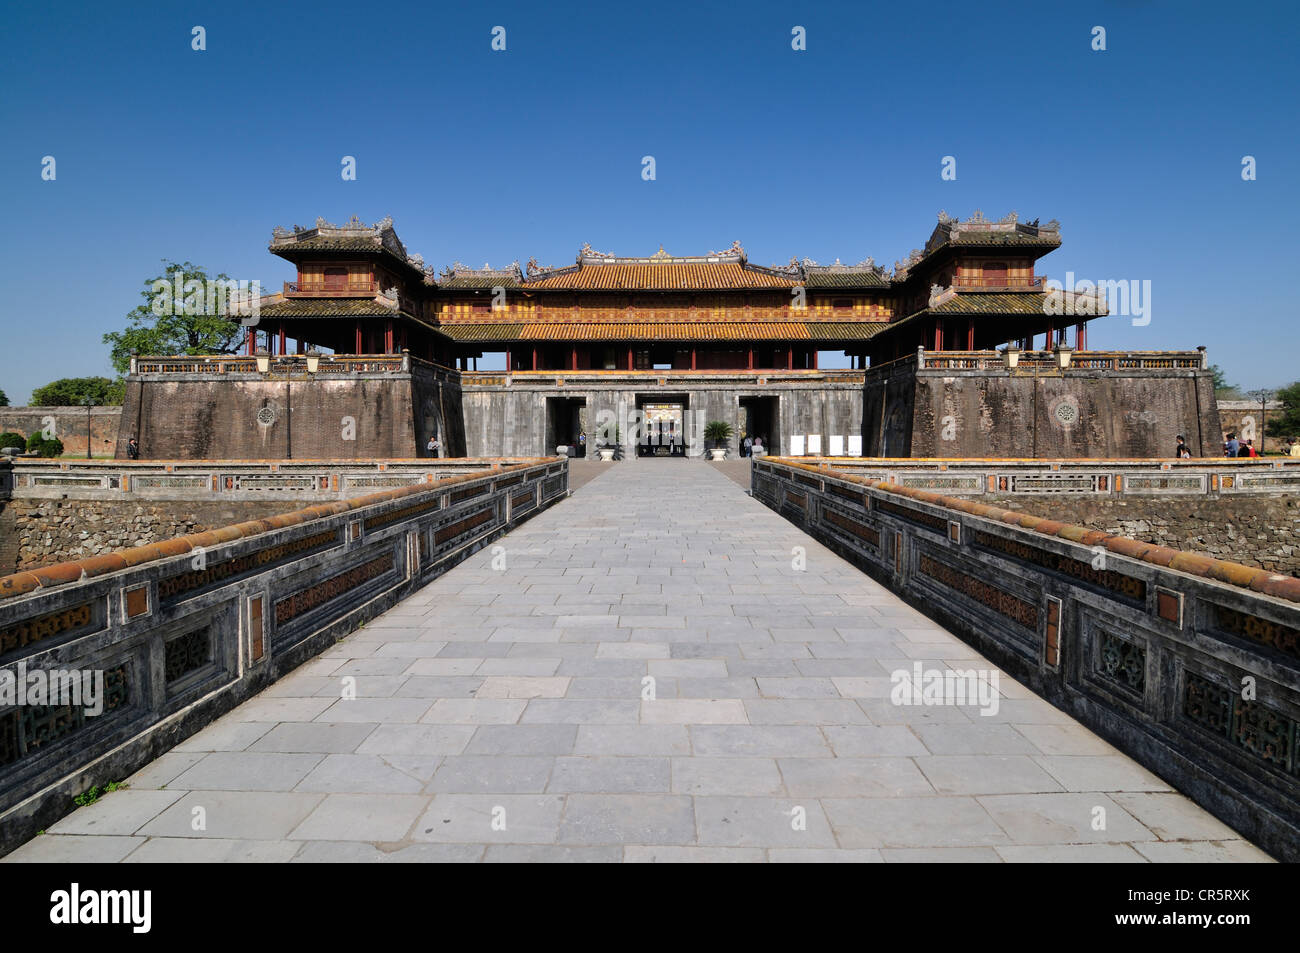 Morning gate, Ngo Mon Gate, main entrance to the Imperial Palace Hoang Thanh, Forbidden City, Hue, UNESCO World - Stock Image